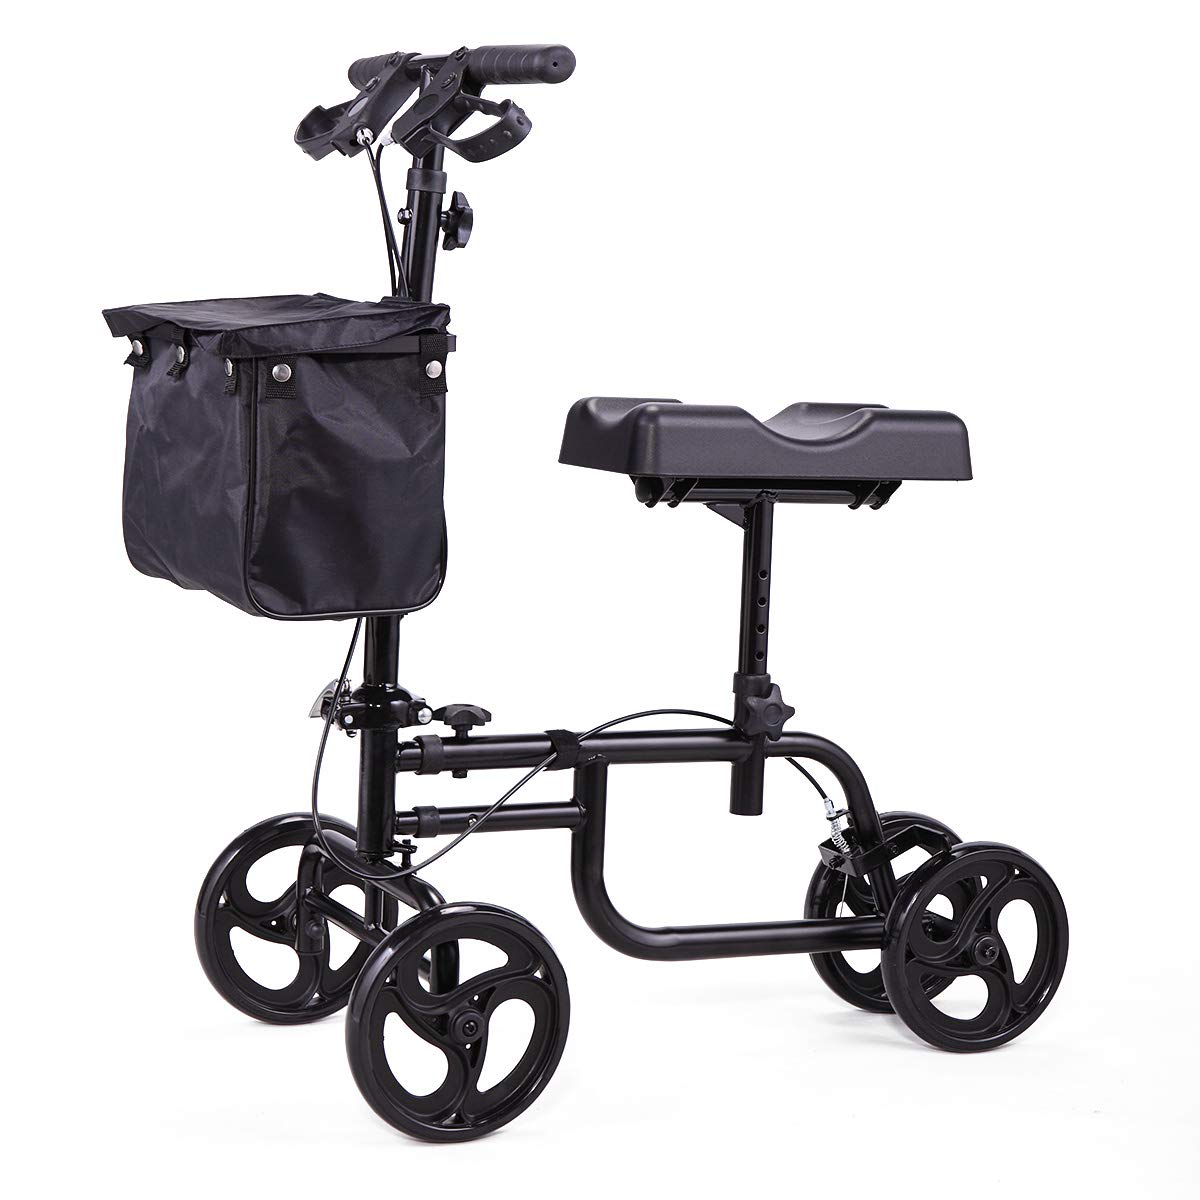 Sandinrayli Knee Scooter Walker Steerable Scooter Crutches Alternative for Disabled Knee Injured Foot by Sandinrayli